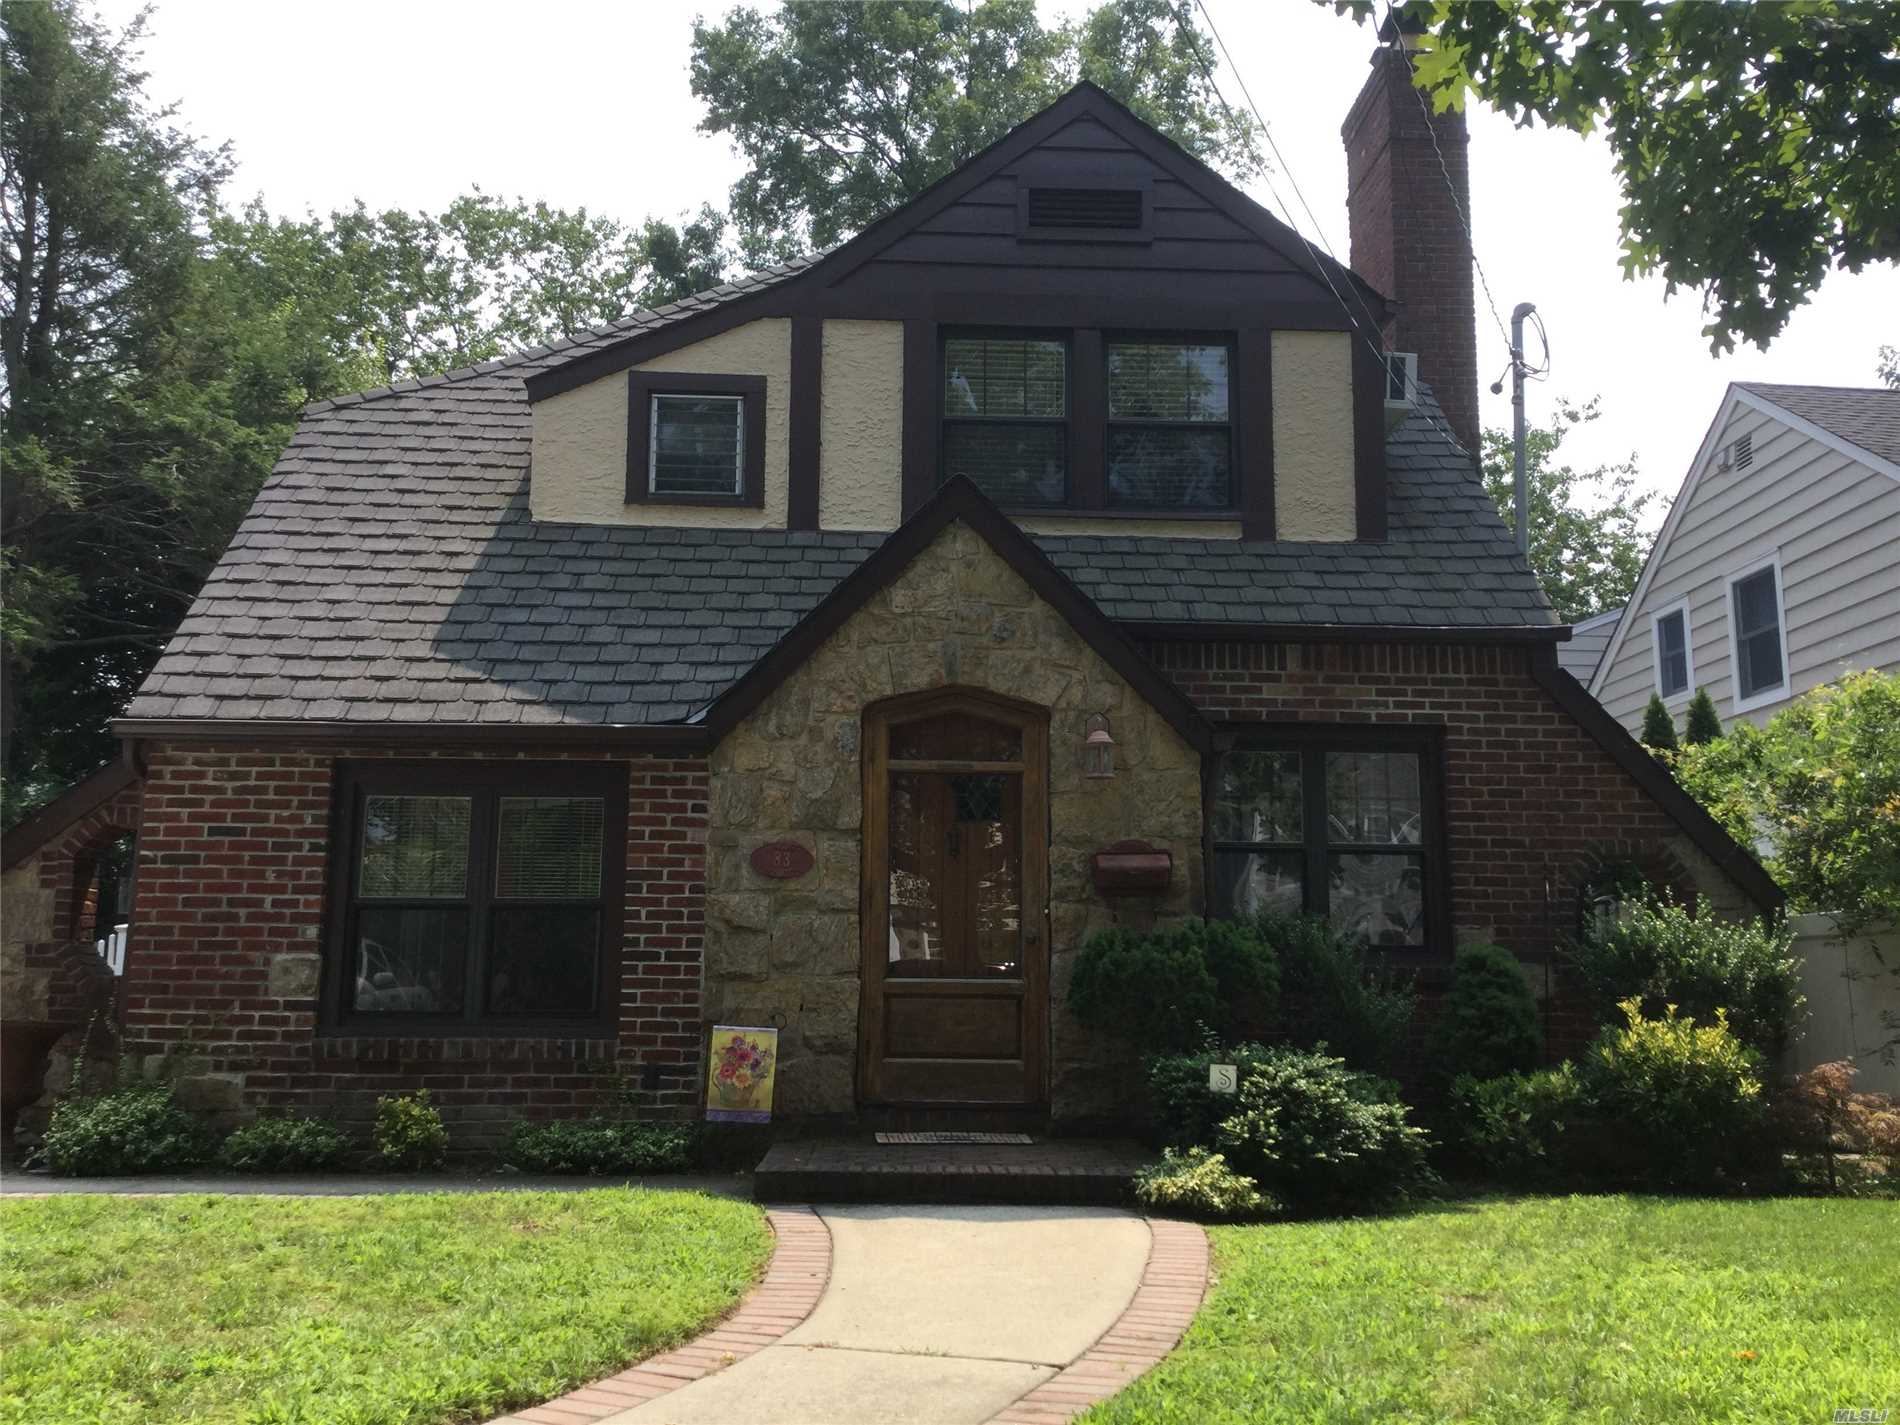 Charming Tudor Colonial With Renovated And Expanded Eik, Lr W/ Fireplace, Radiant Heat, Bar Area, Mud Room, Hardwood Floors Throughout, Sliders From Eik To Patio And Fenced Yard. Beautiful Block And Great Curb Appeal. Has Steam And Gas Heat. Won't Last!